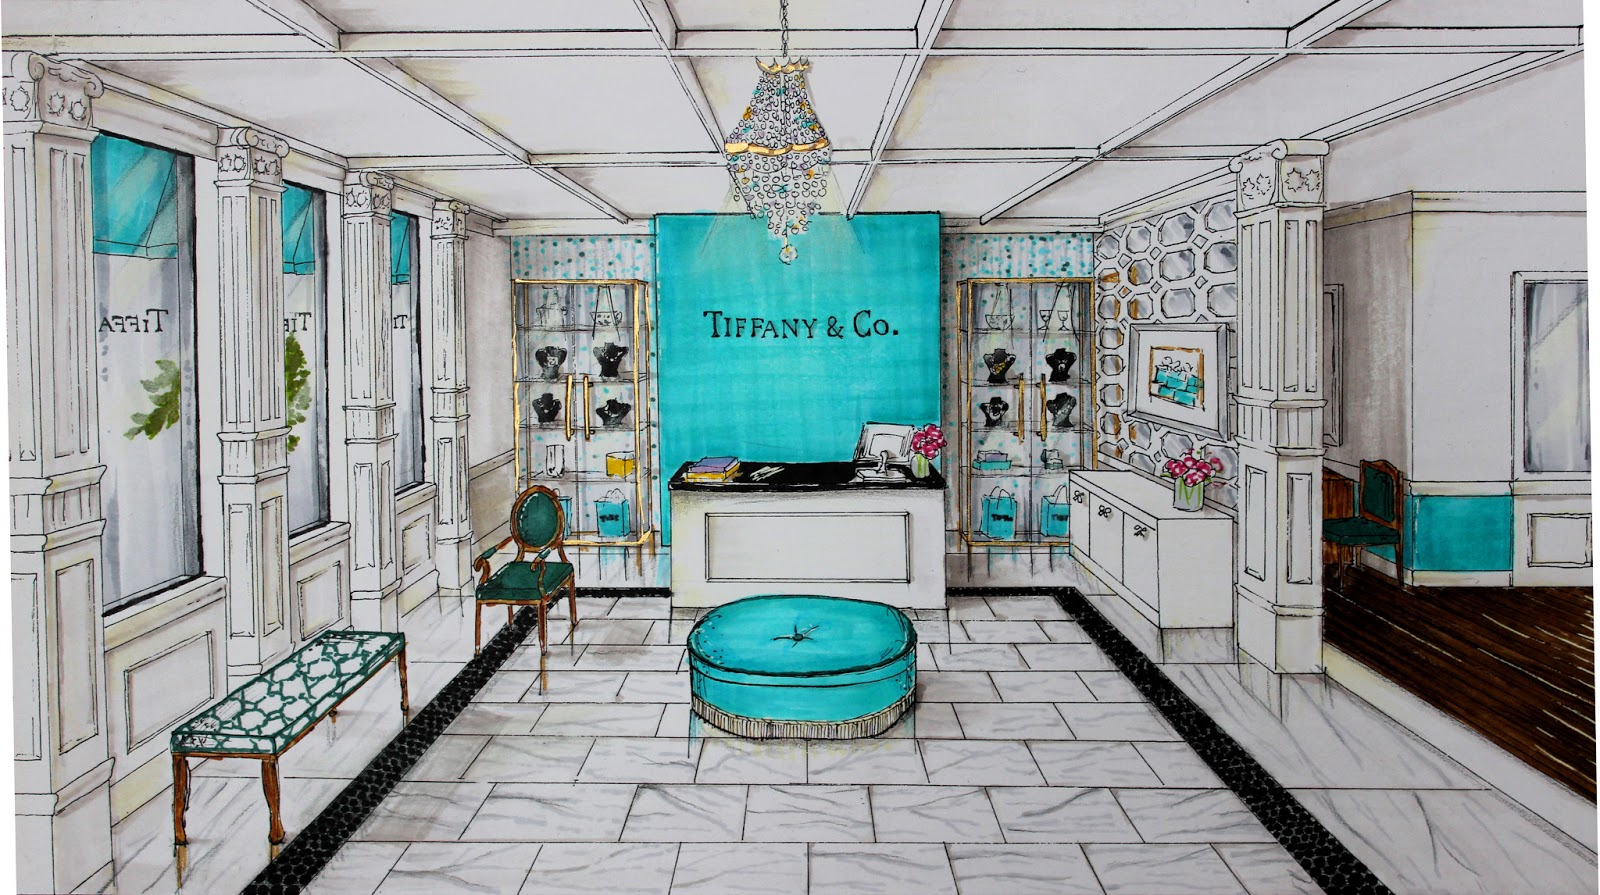 Tiffany co reception completed project house for Where is tiffany and co located